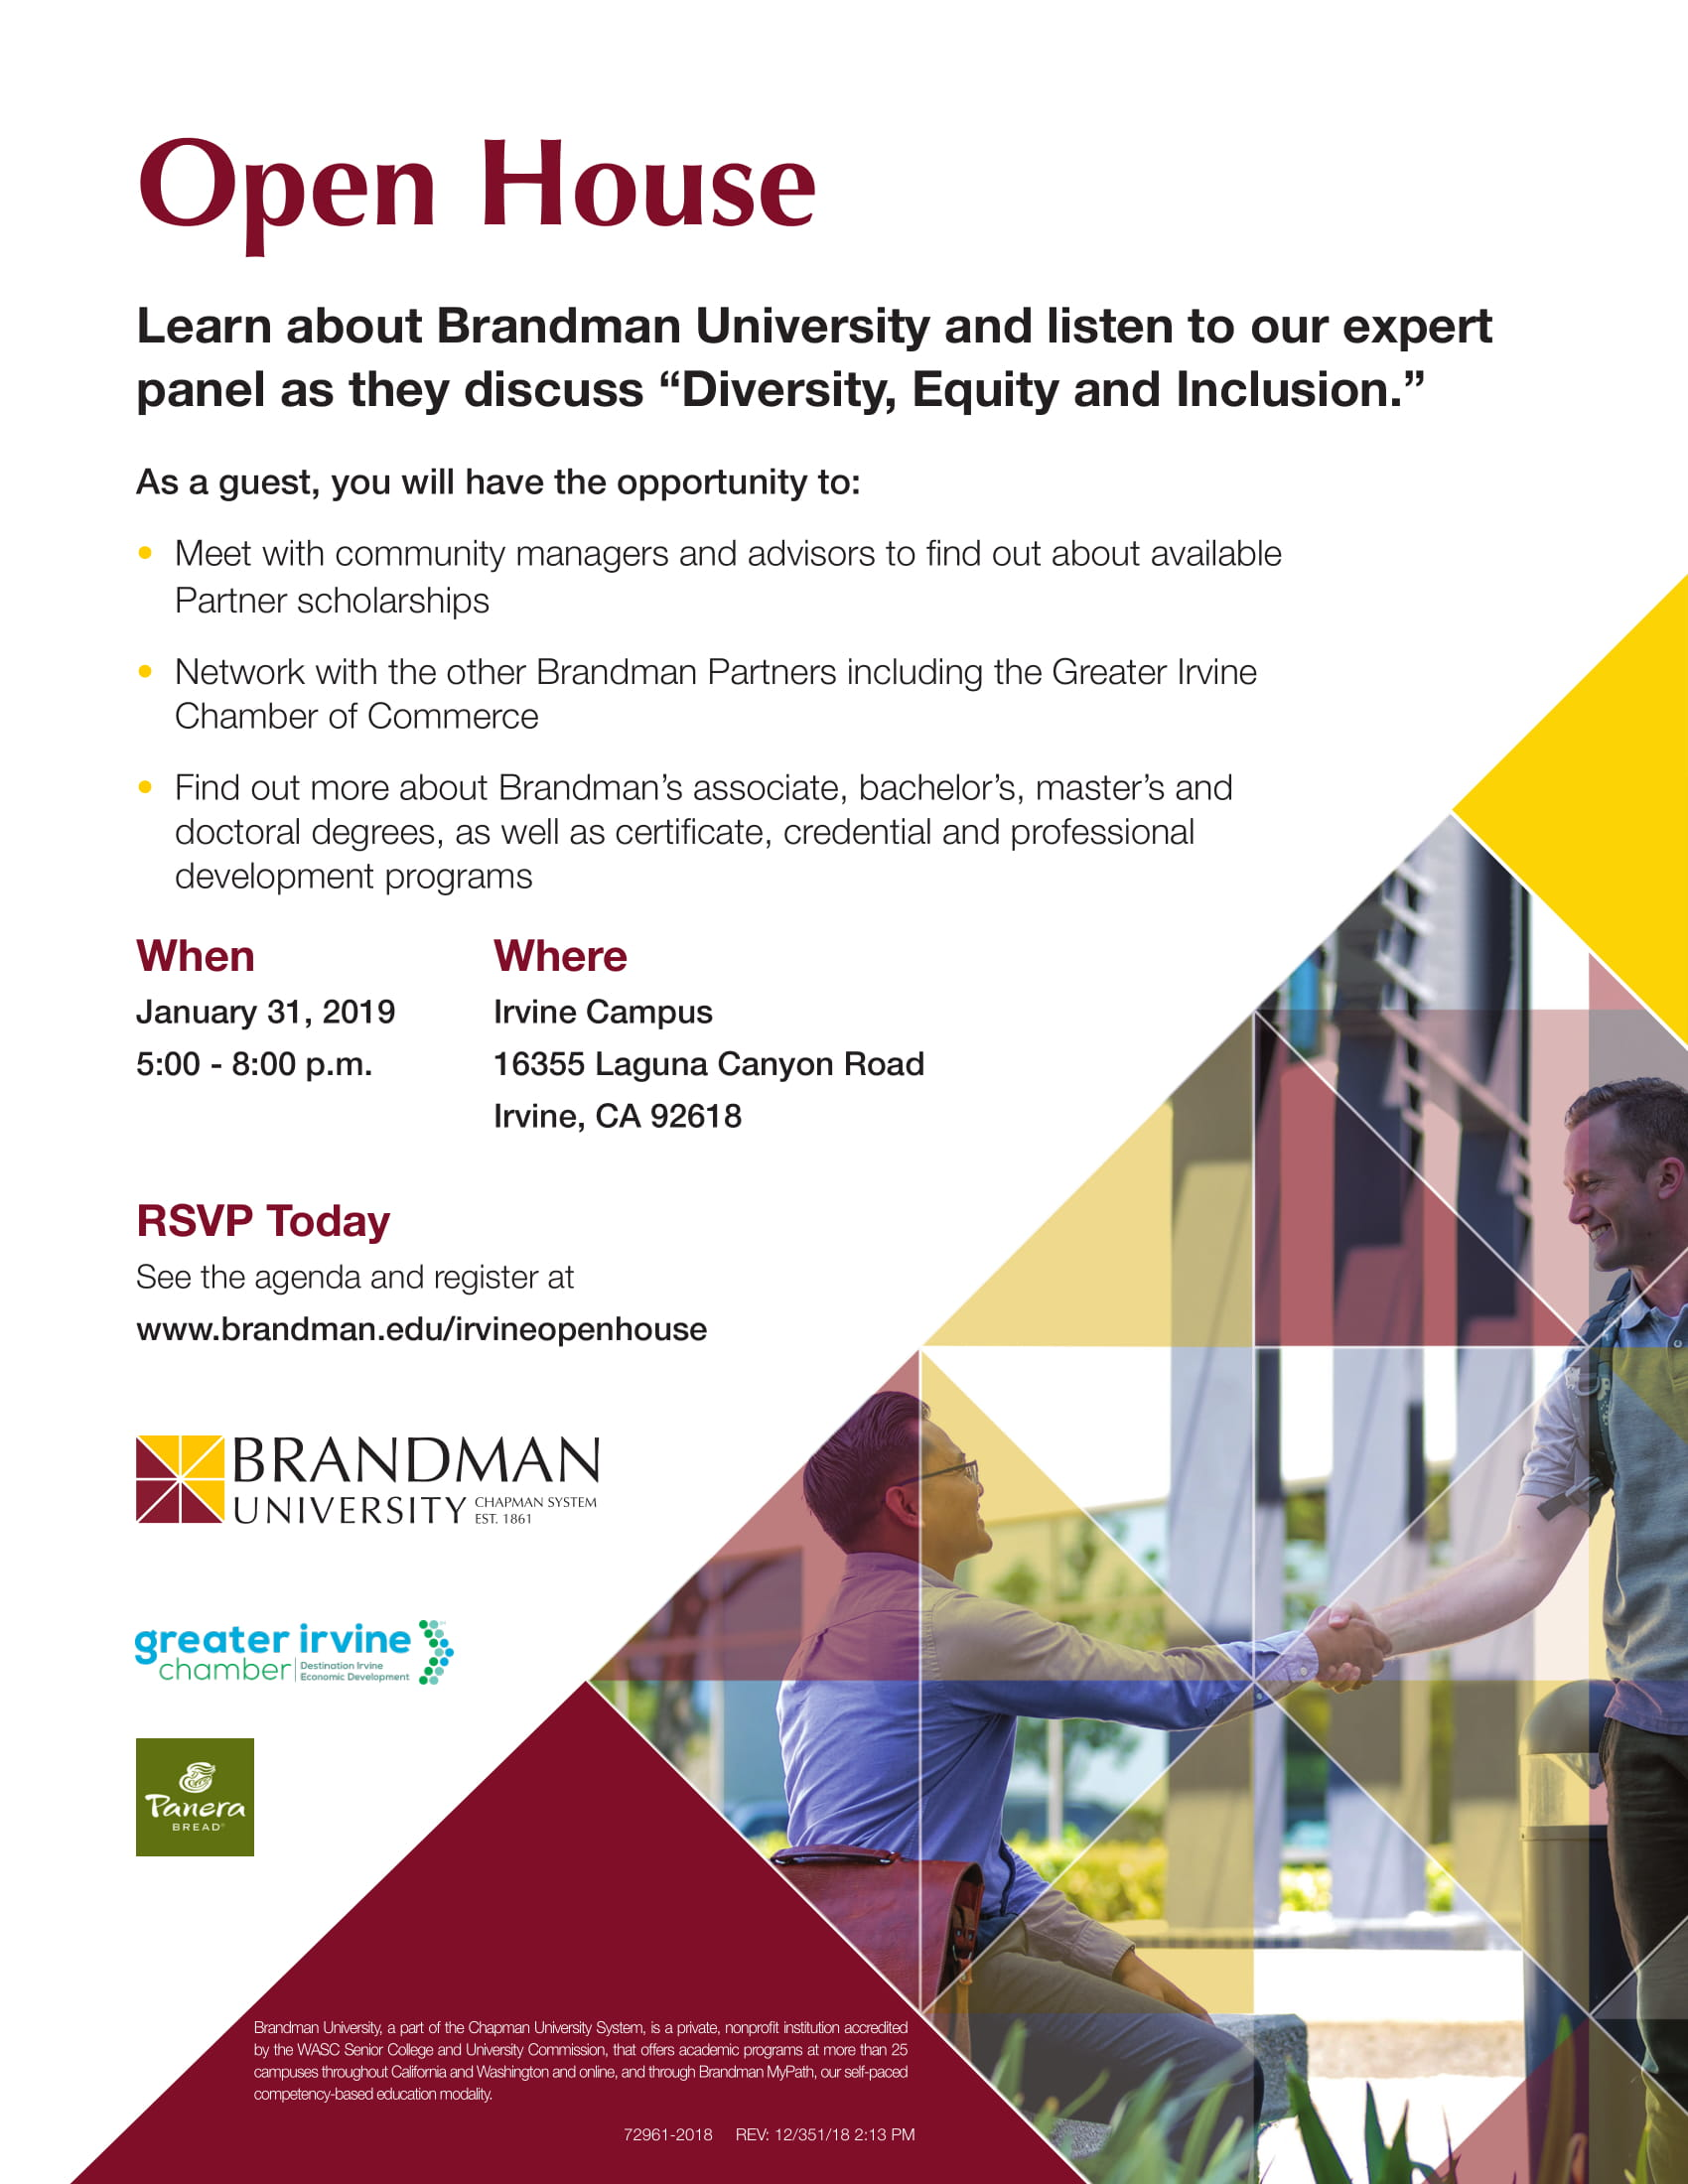 Brandman University-Open House @ Irvine Campus